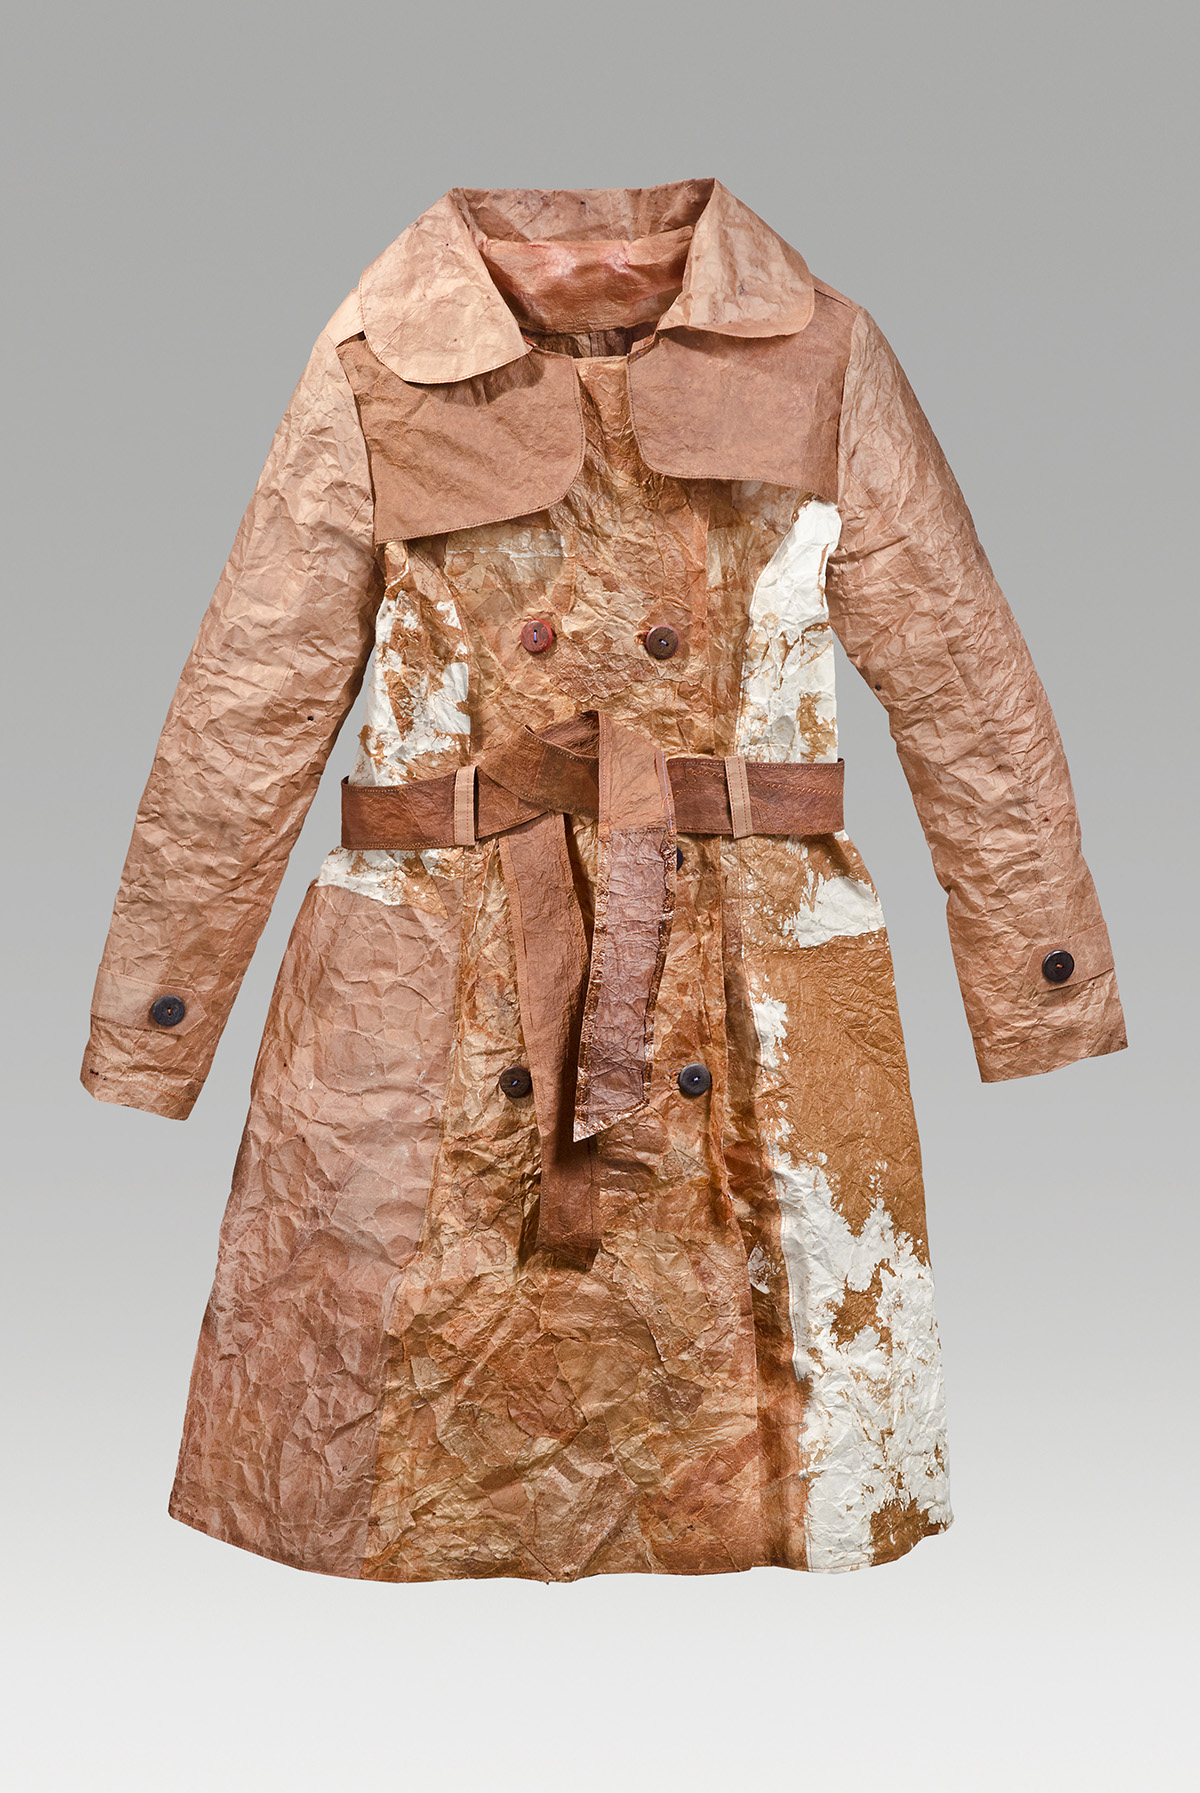 "Appaloosa coat (2016). Persimmon juice on hanji, thread, buttons. 41 x 39 x 5"". Private collection."